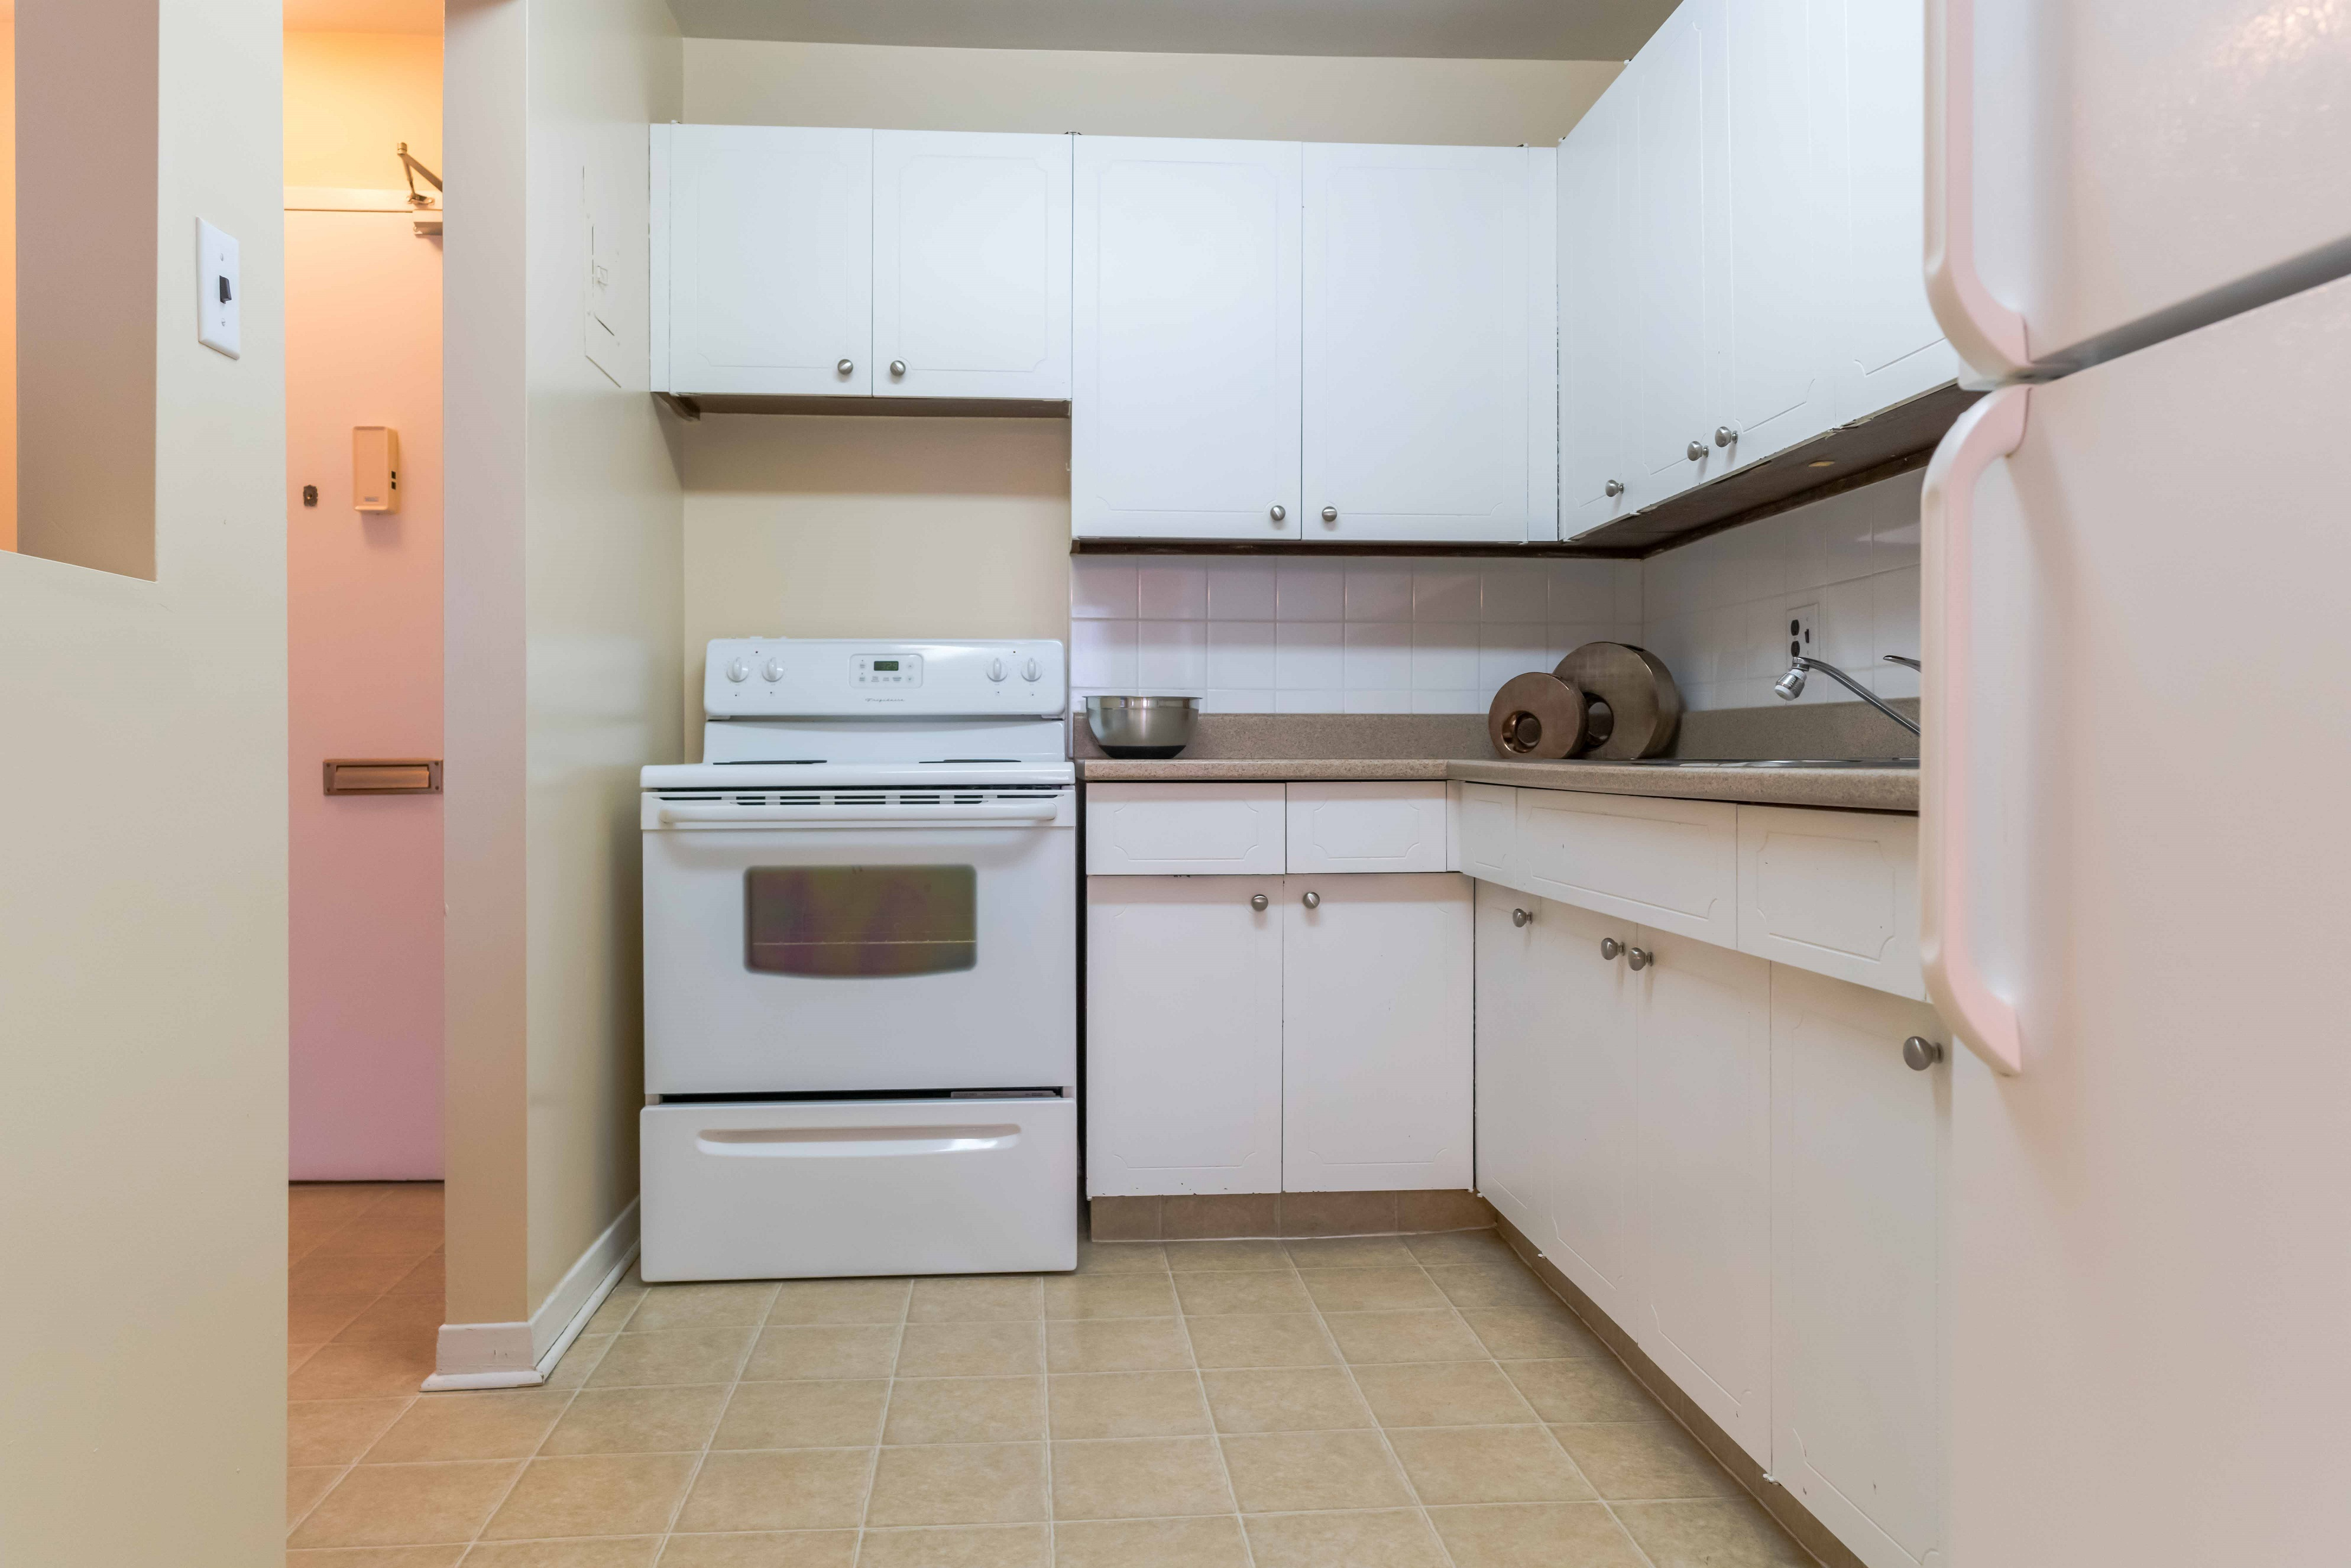 Apartments For Rent Winnipeg - 555 River Apartment Kitchen - Angle 1